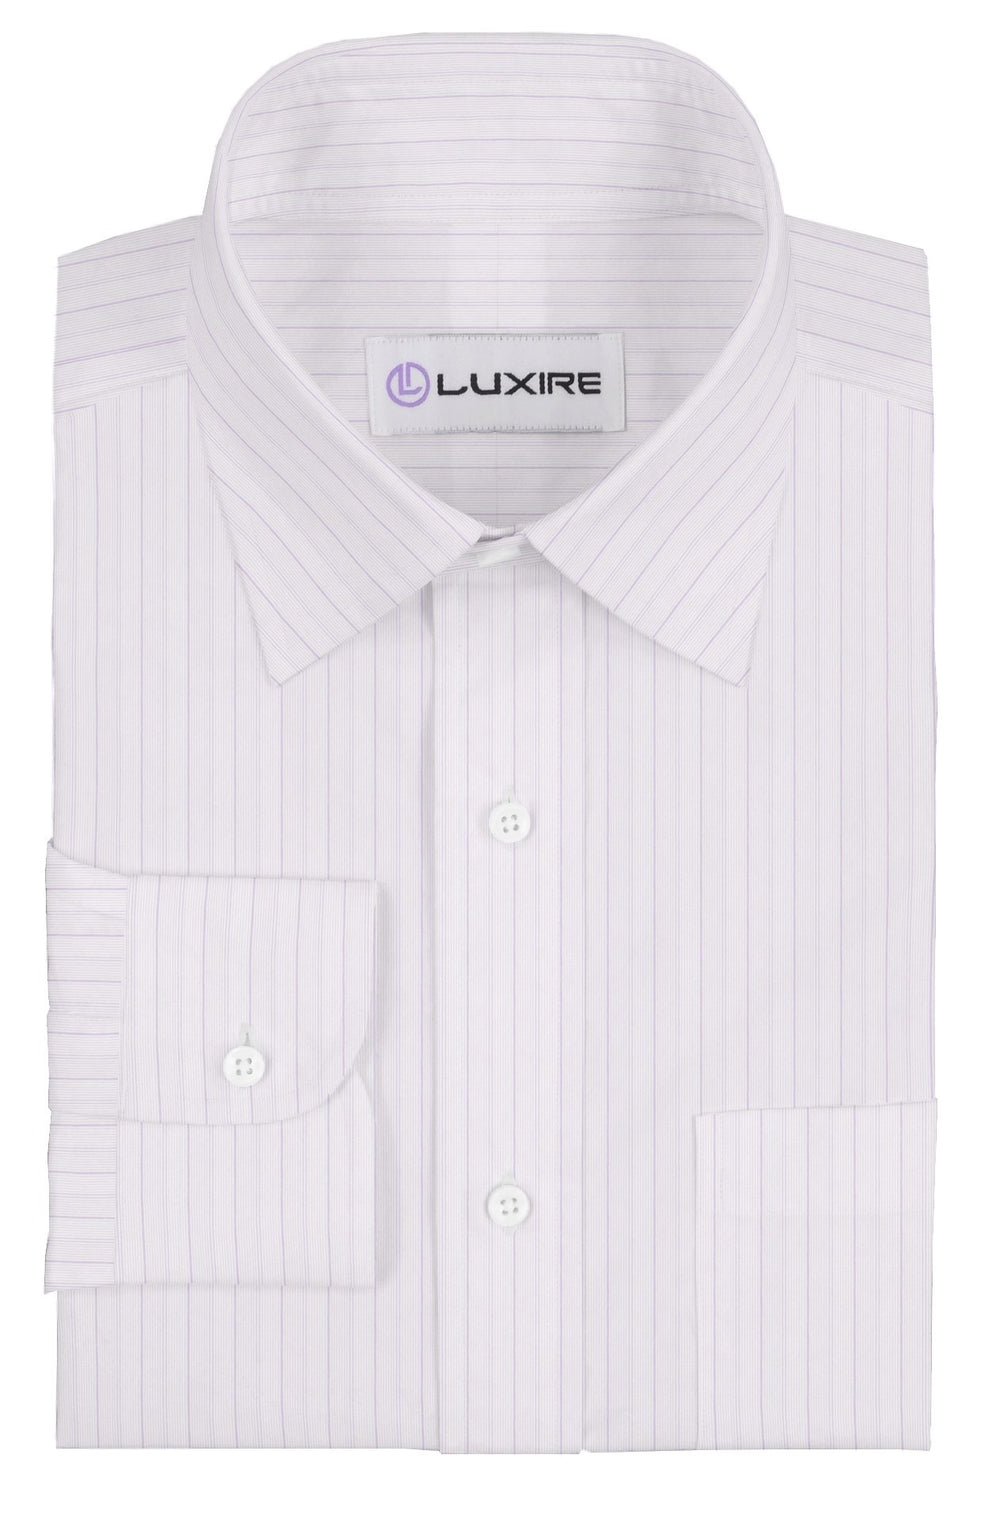 A Touch of Silk:Purple Pin Stripes on White: Natural Wrinkle Free (297231137)